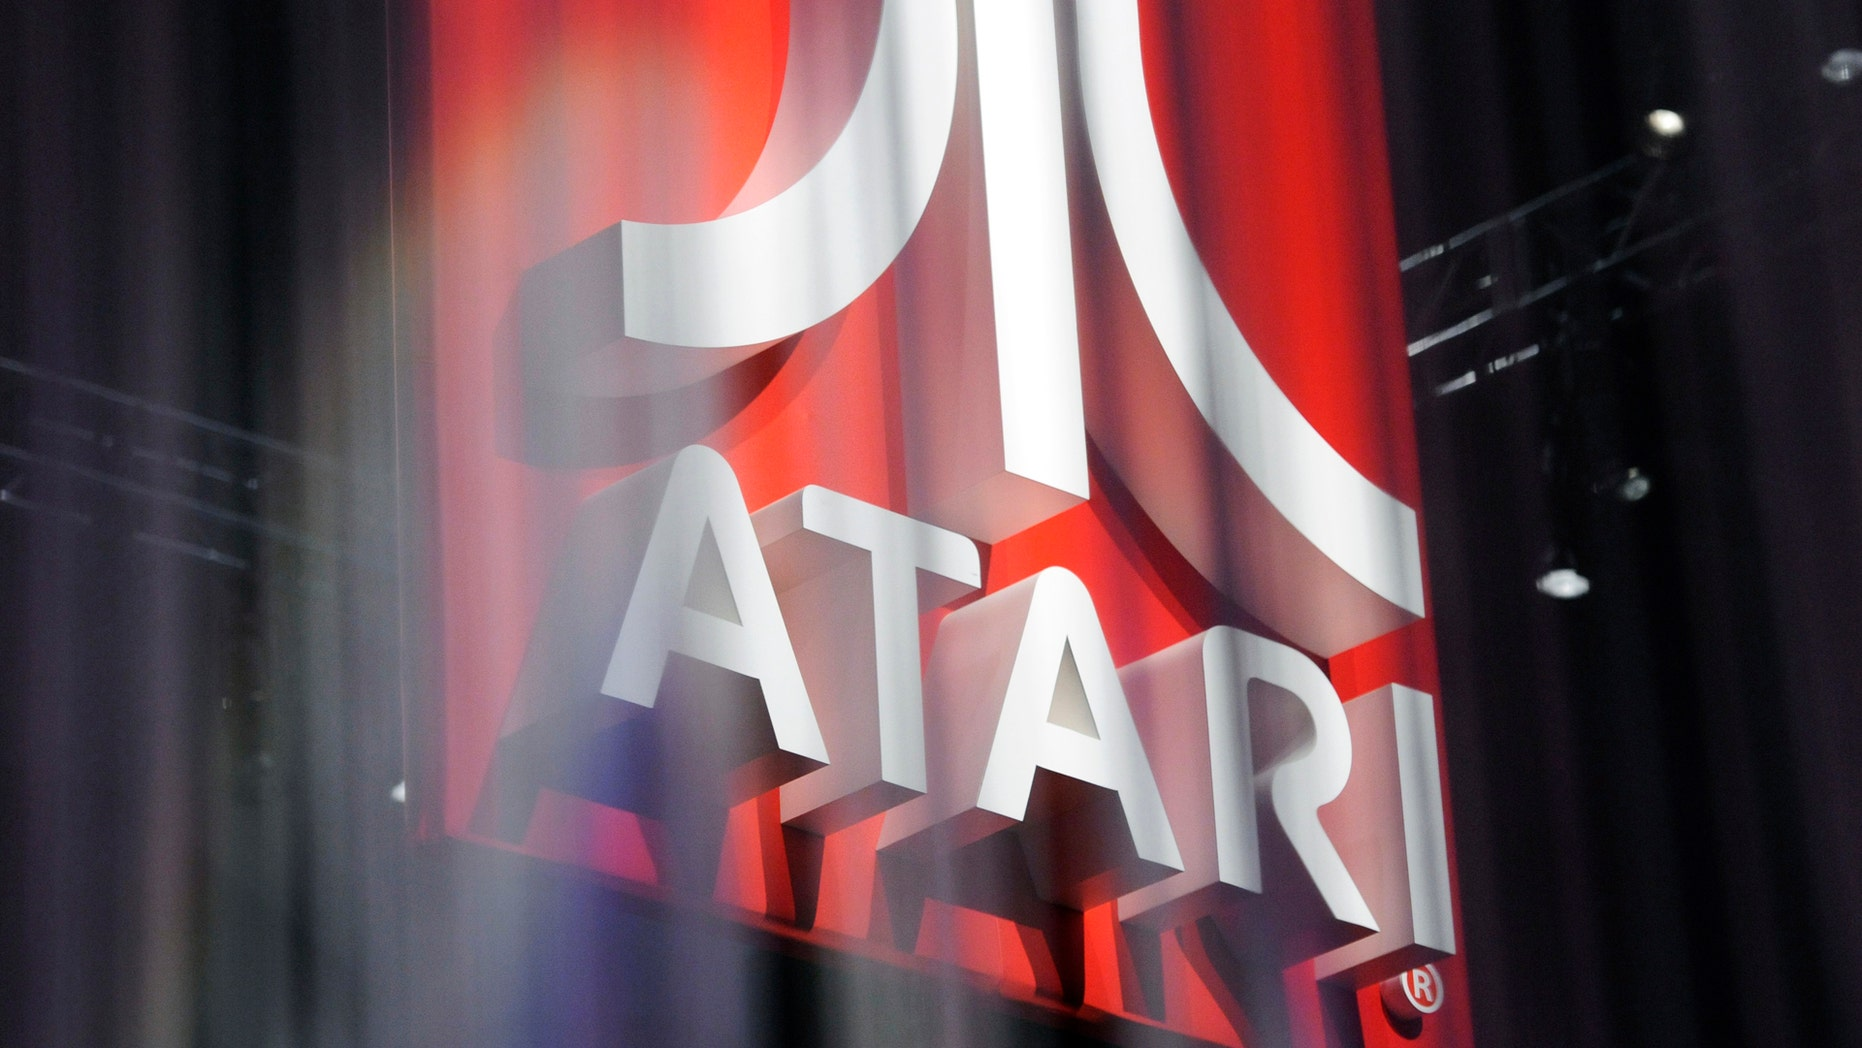 File photo: The Atari booth is pictured during E3, the Electronic Entertainment Expo, in Los Angeles June 8, 2011. (REUTERS/Phil McCarten)